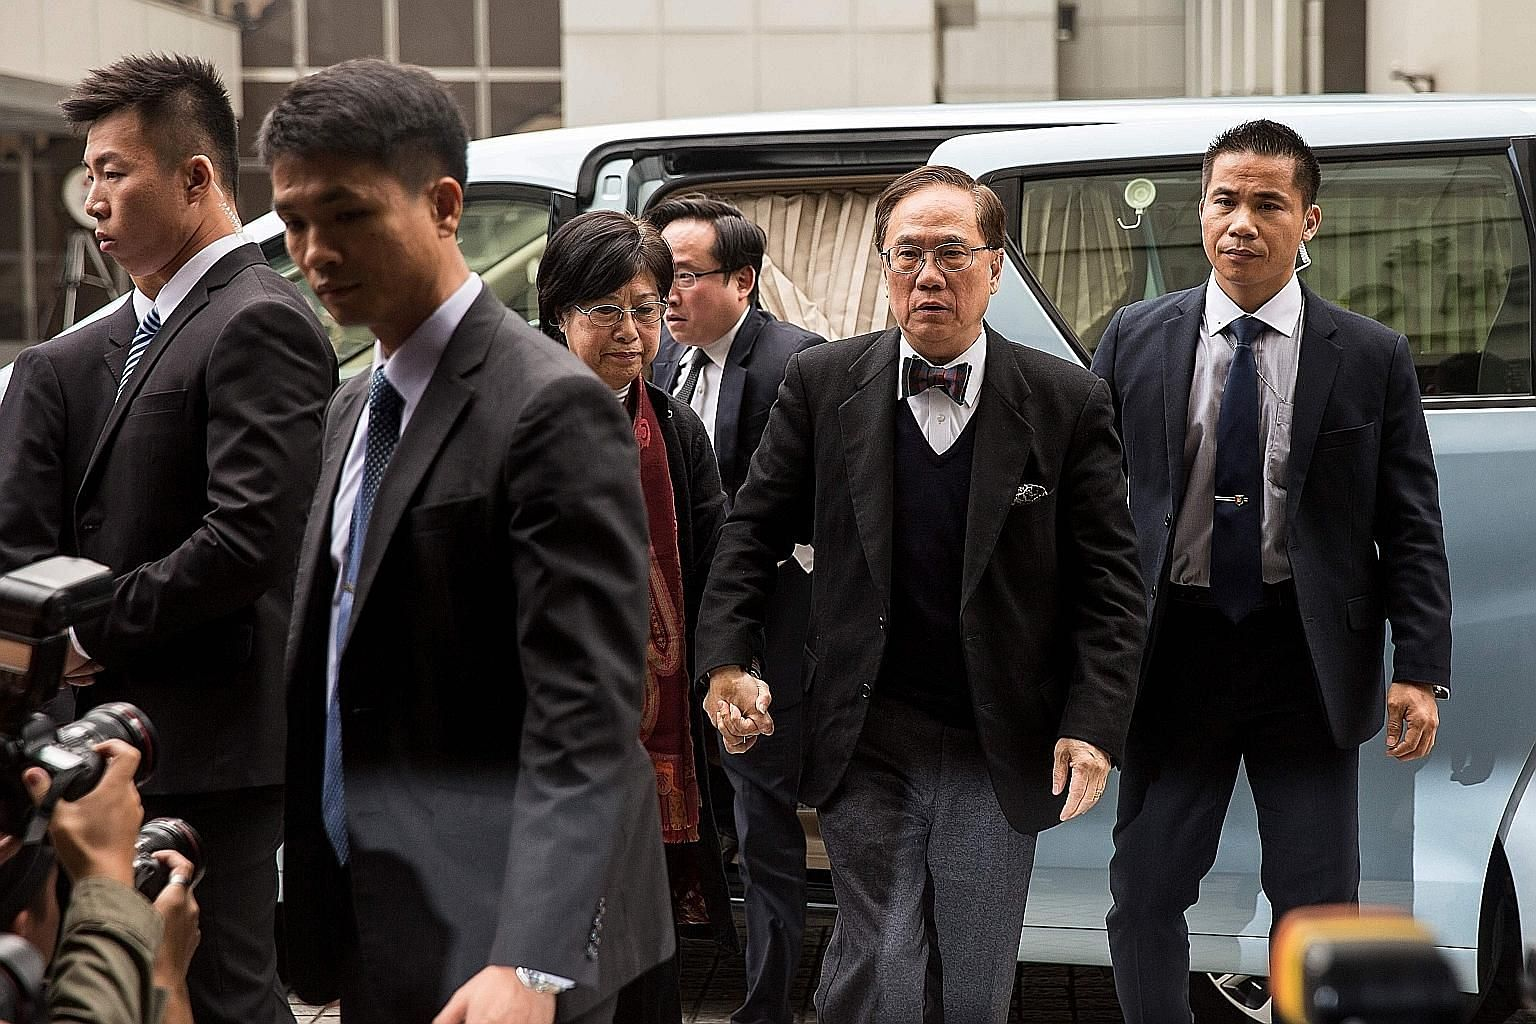 Former chief executive Donald Tsang (in bow tie) arriving at Hong Kong's High Court. He was convicted last week of misconduct in public office.